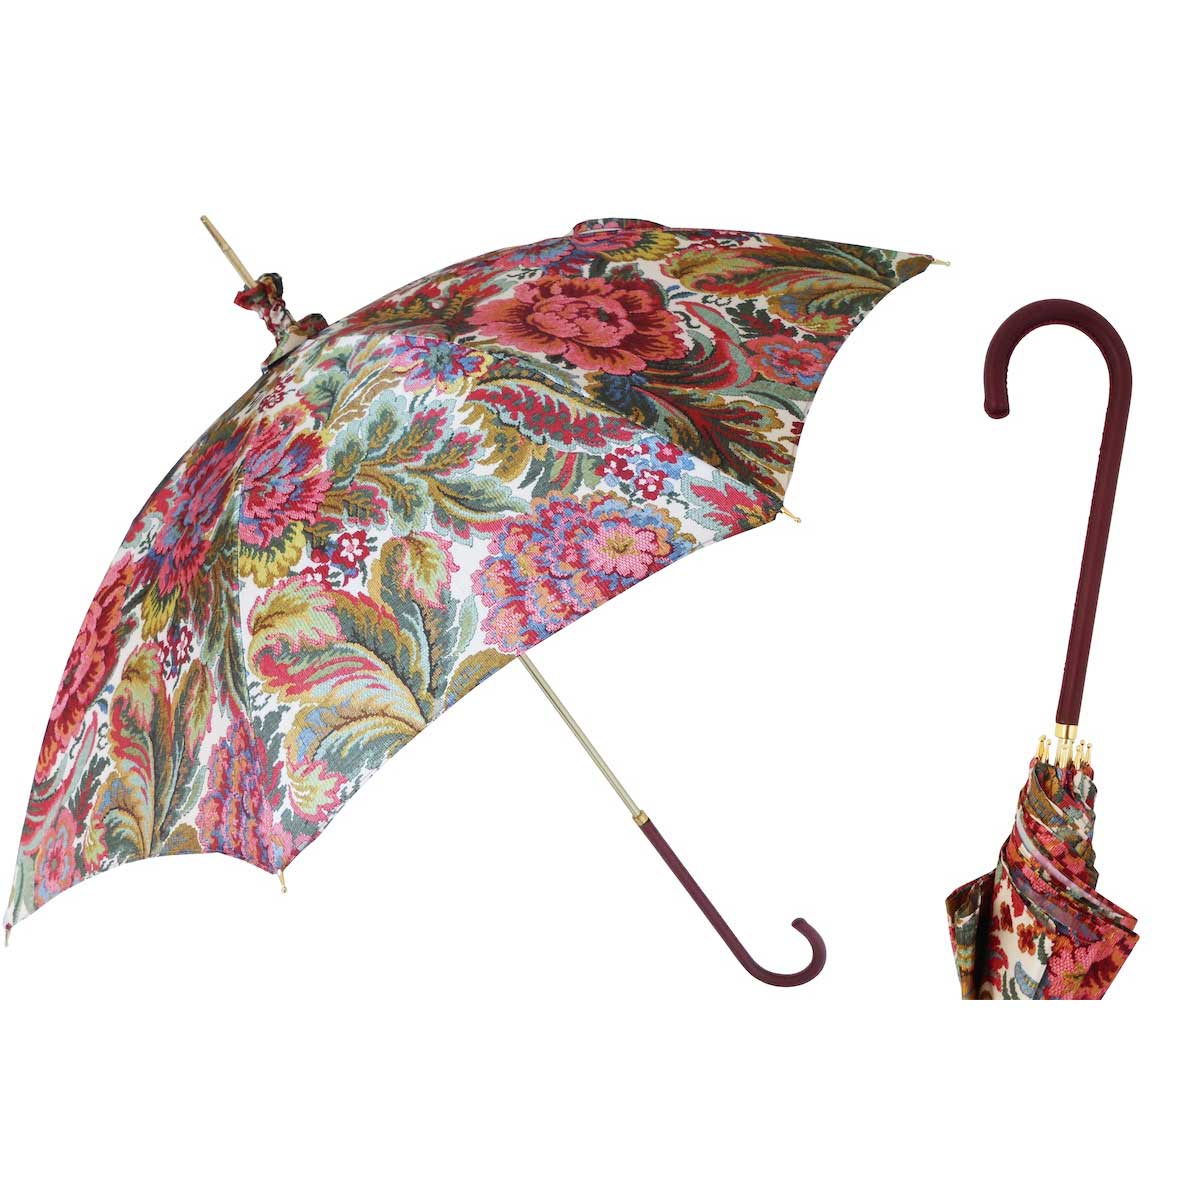 Pasotti Paisley Parasol - Brown Leather Handle